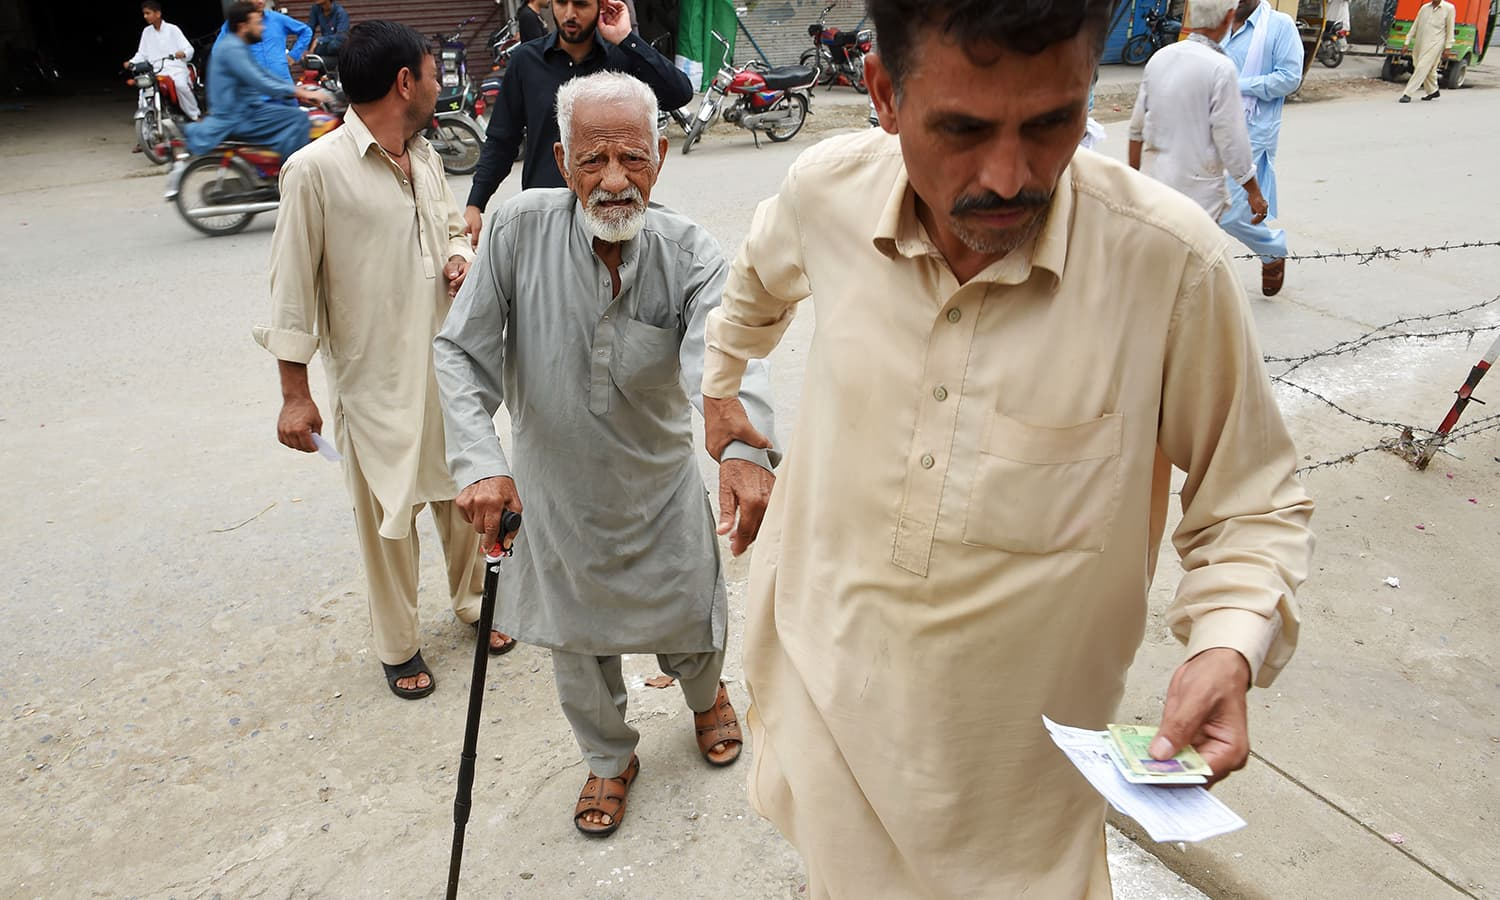 An elderly man is assisted by his son as they arrive at a polling station in Rawalpindi. — AFP